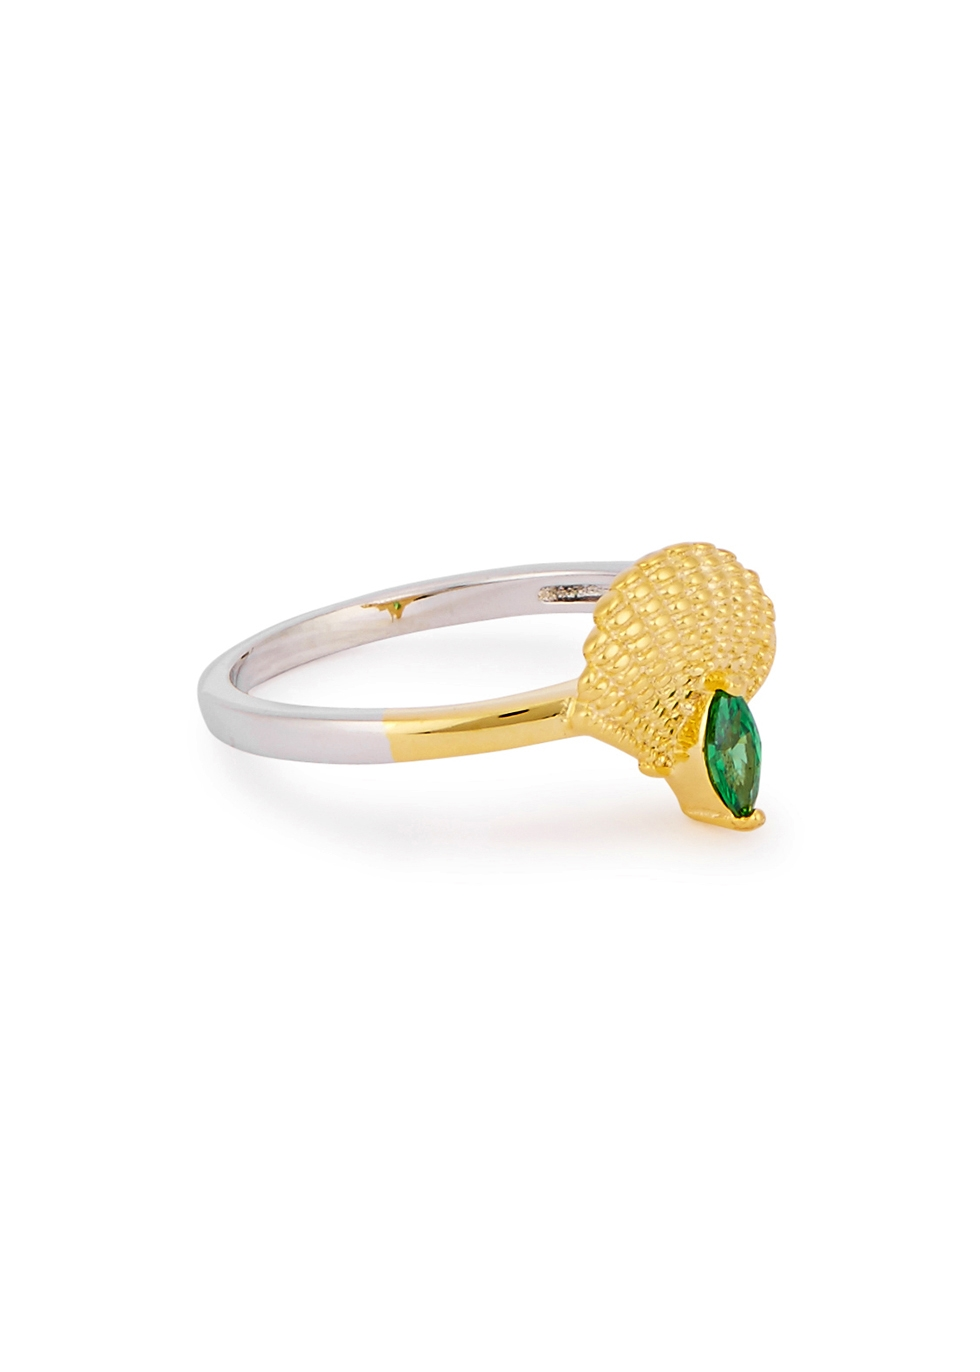 V JEWELLERY Pamela 18Ct Gold And Rhodium-Plated Ring in Metallic